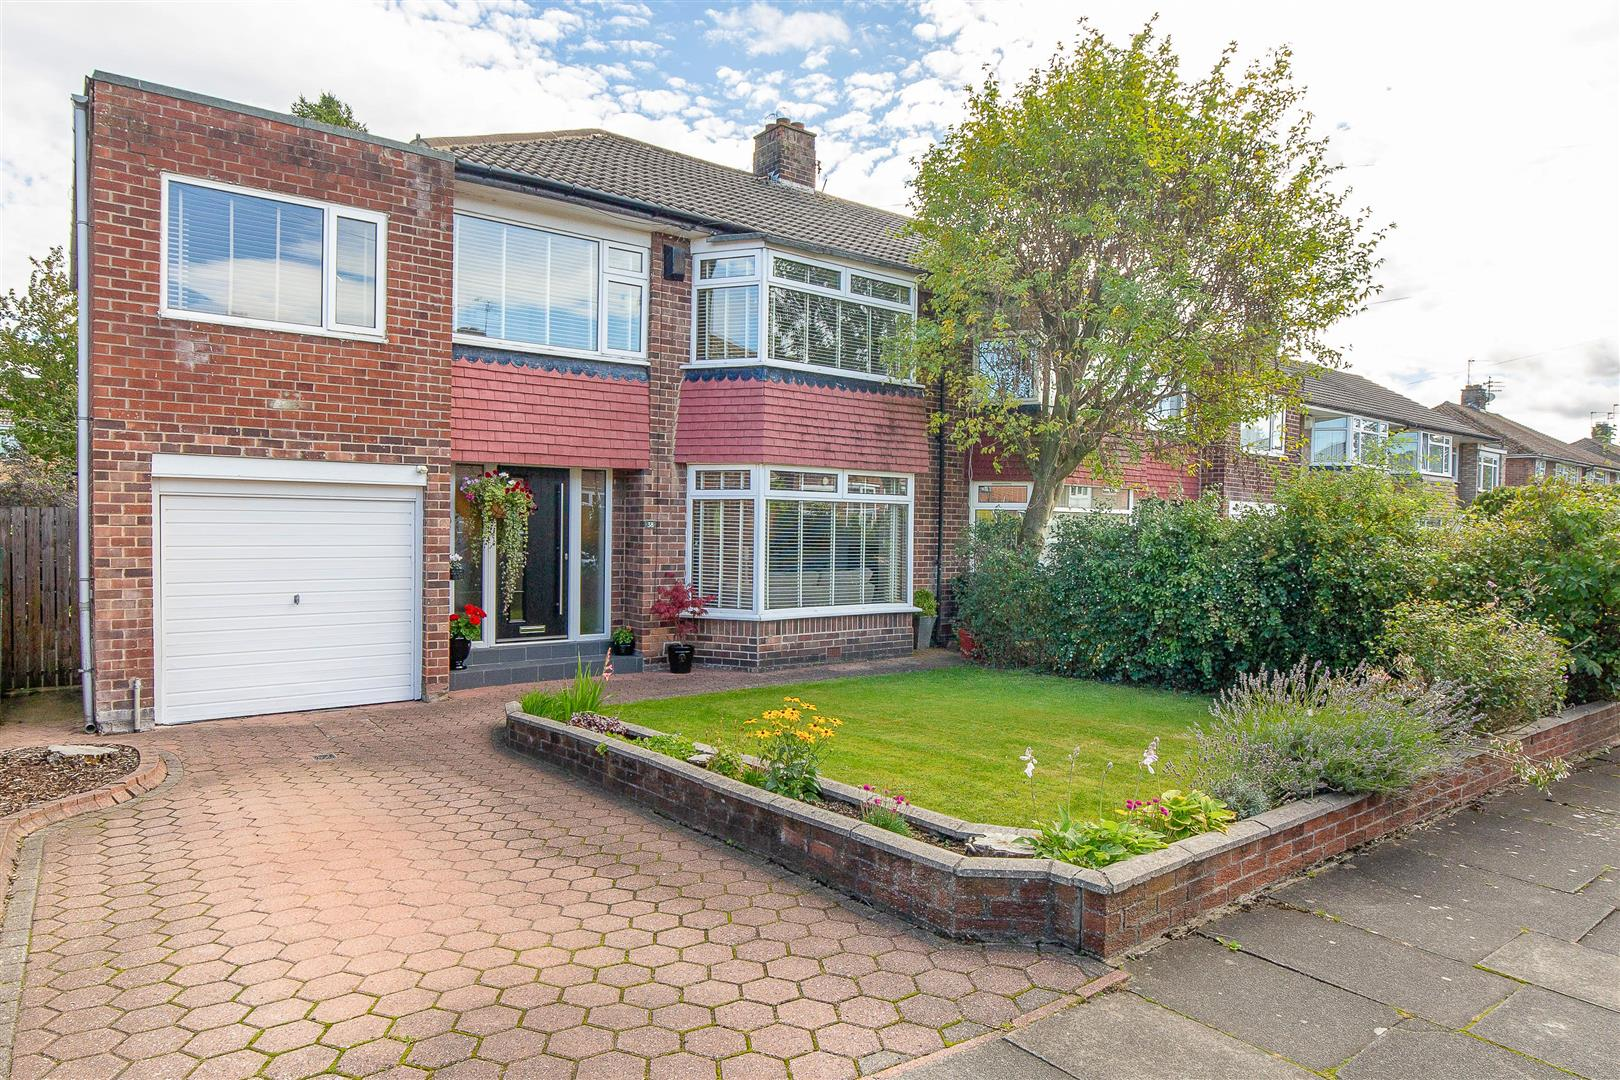 5 bed semi-detached house for sale in Easedale Avenue, Melton Park  - Property Image 1